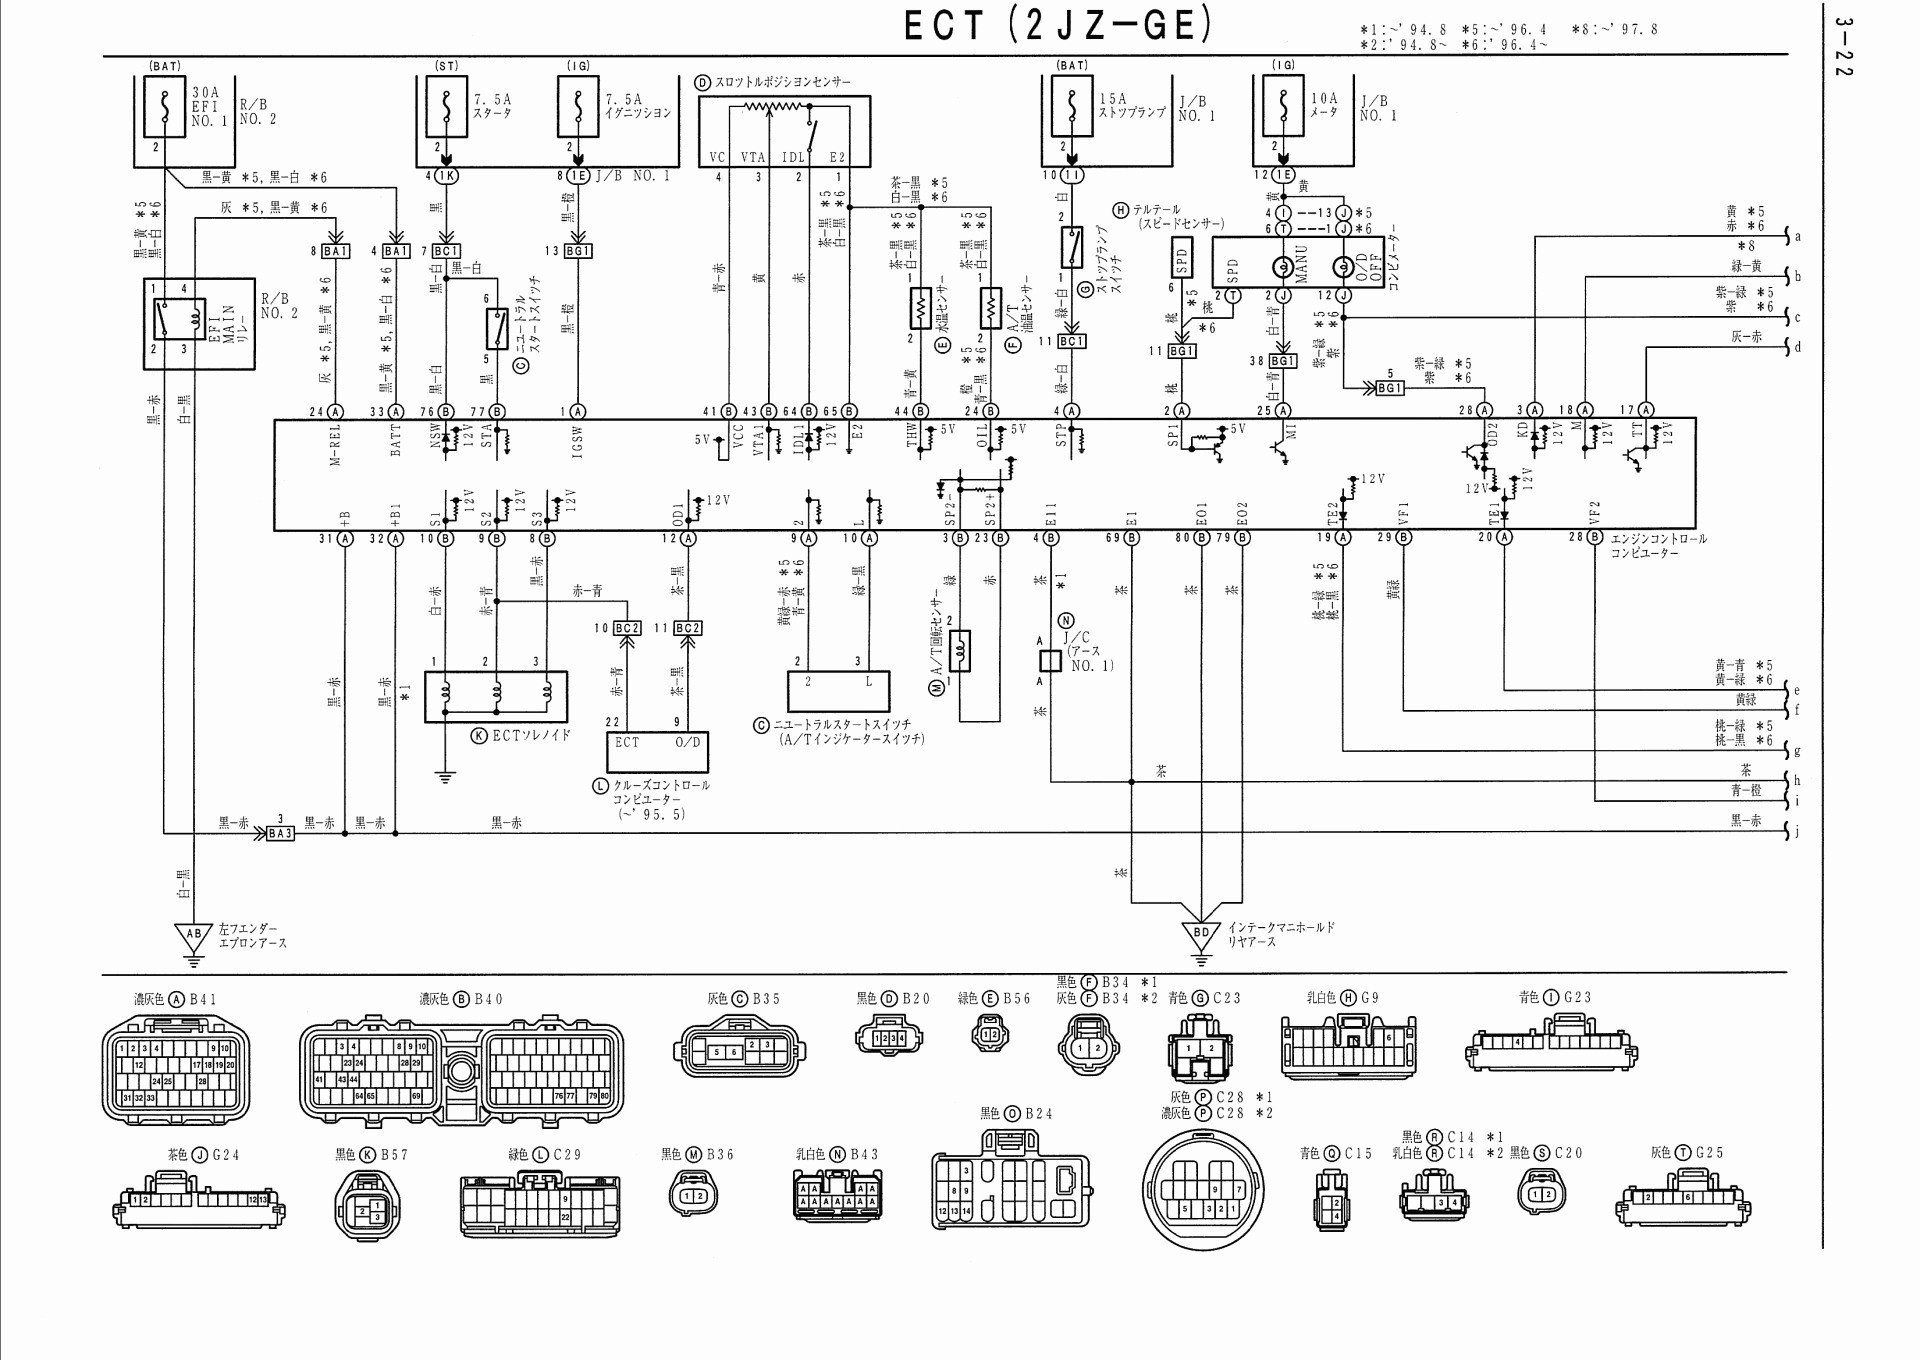 Bmw E36 318i Engine Wiring Diagram